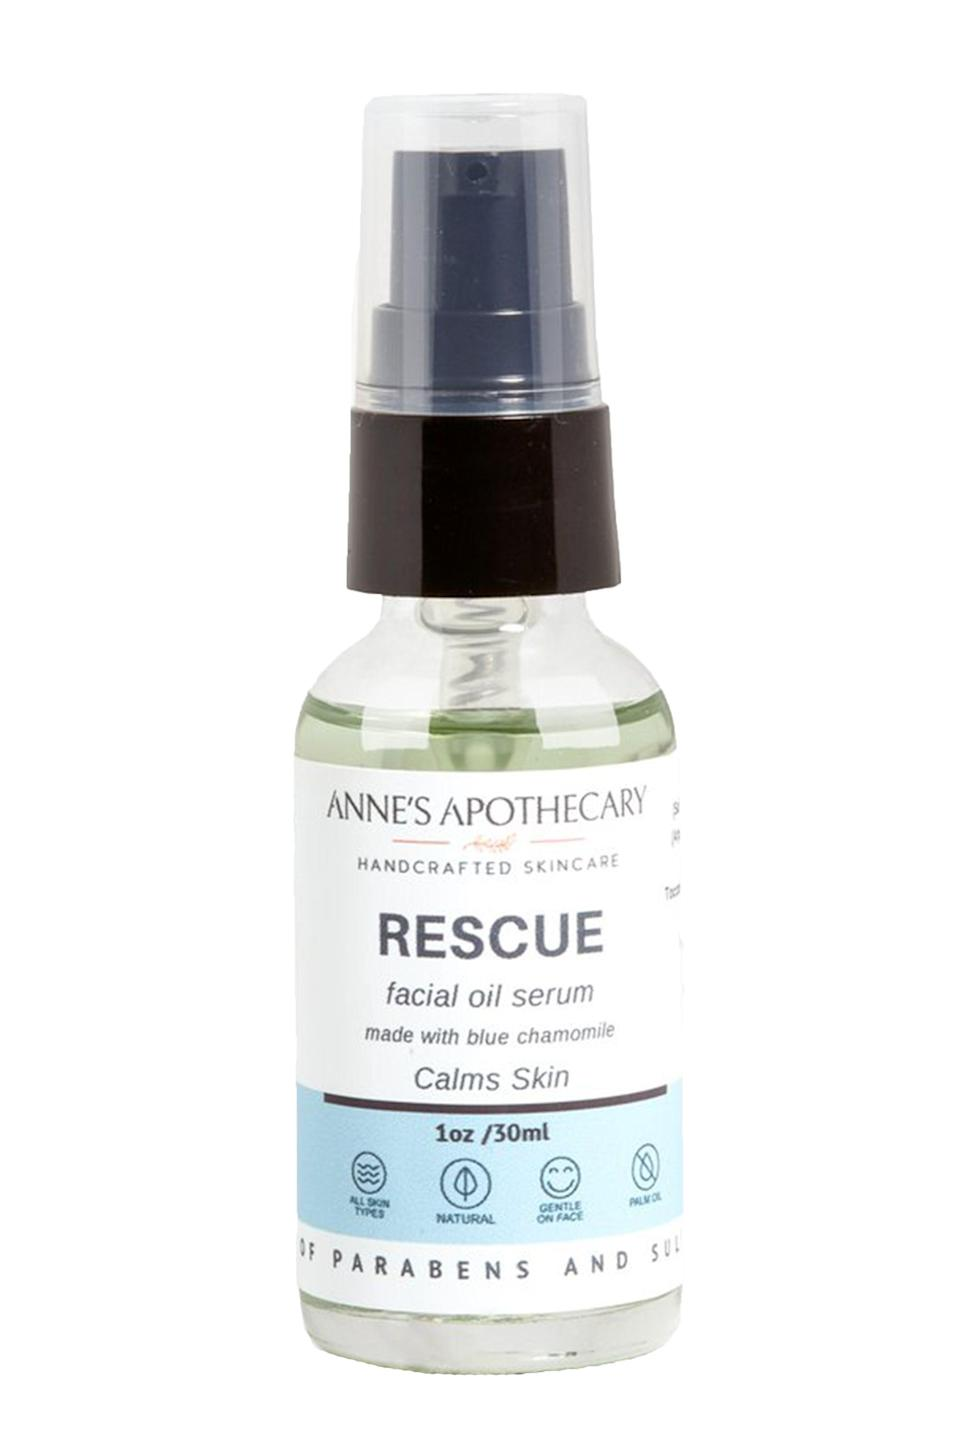 """<p><strong>Annes Apothecary</strong></p><p>annesapothecary.com</p><p><strong>$65.00</strong></p><p><a href=""""https://annesapothecary.com/products/acne-treatment-set?_pos=2&_sid=d6ff00050&_ss=r"""" rel=""""nofollow noopener"""" target=""""_blank"""" data-ylk=""""slk:Shop Now"""" class=""""link rapid-noclick-resp"""">Shop Now</a></p><p>For an all-natural skincare line that fights acne without leaving your skin irritated, Annes Apothecary has you covered. The Black Honey cleanser is built around the humectant its named after, with help from activated charcoal and tea tree oil, ingredients that run throughout the entire collection.</p>"""